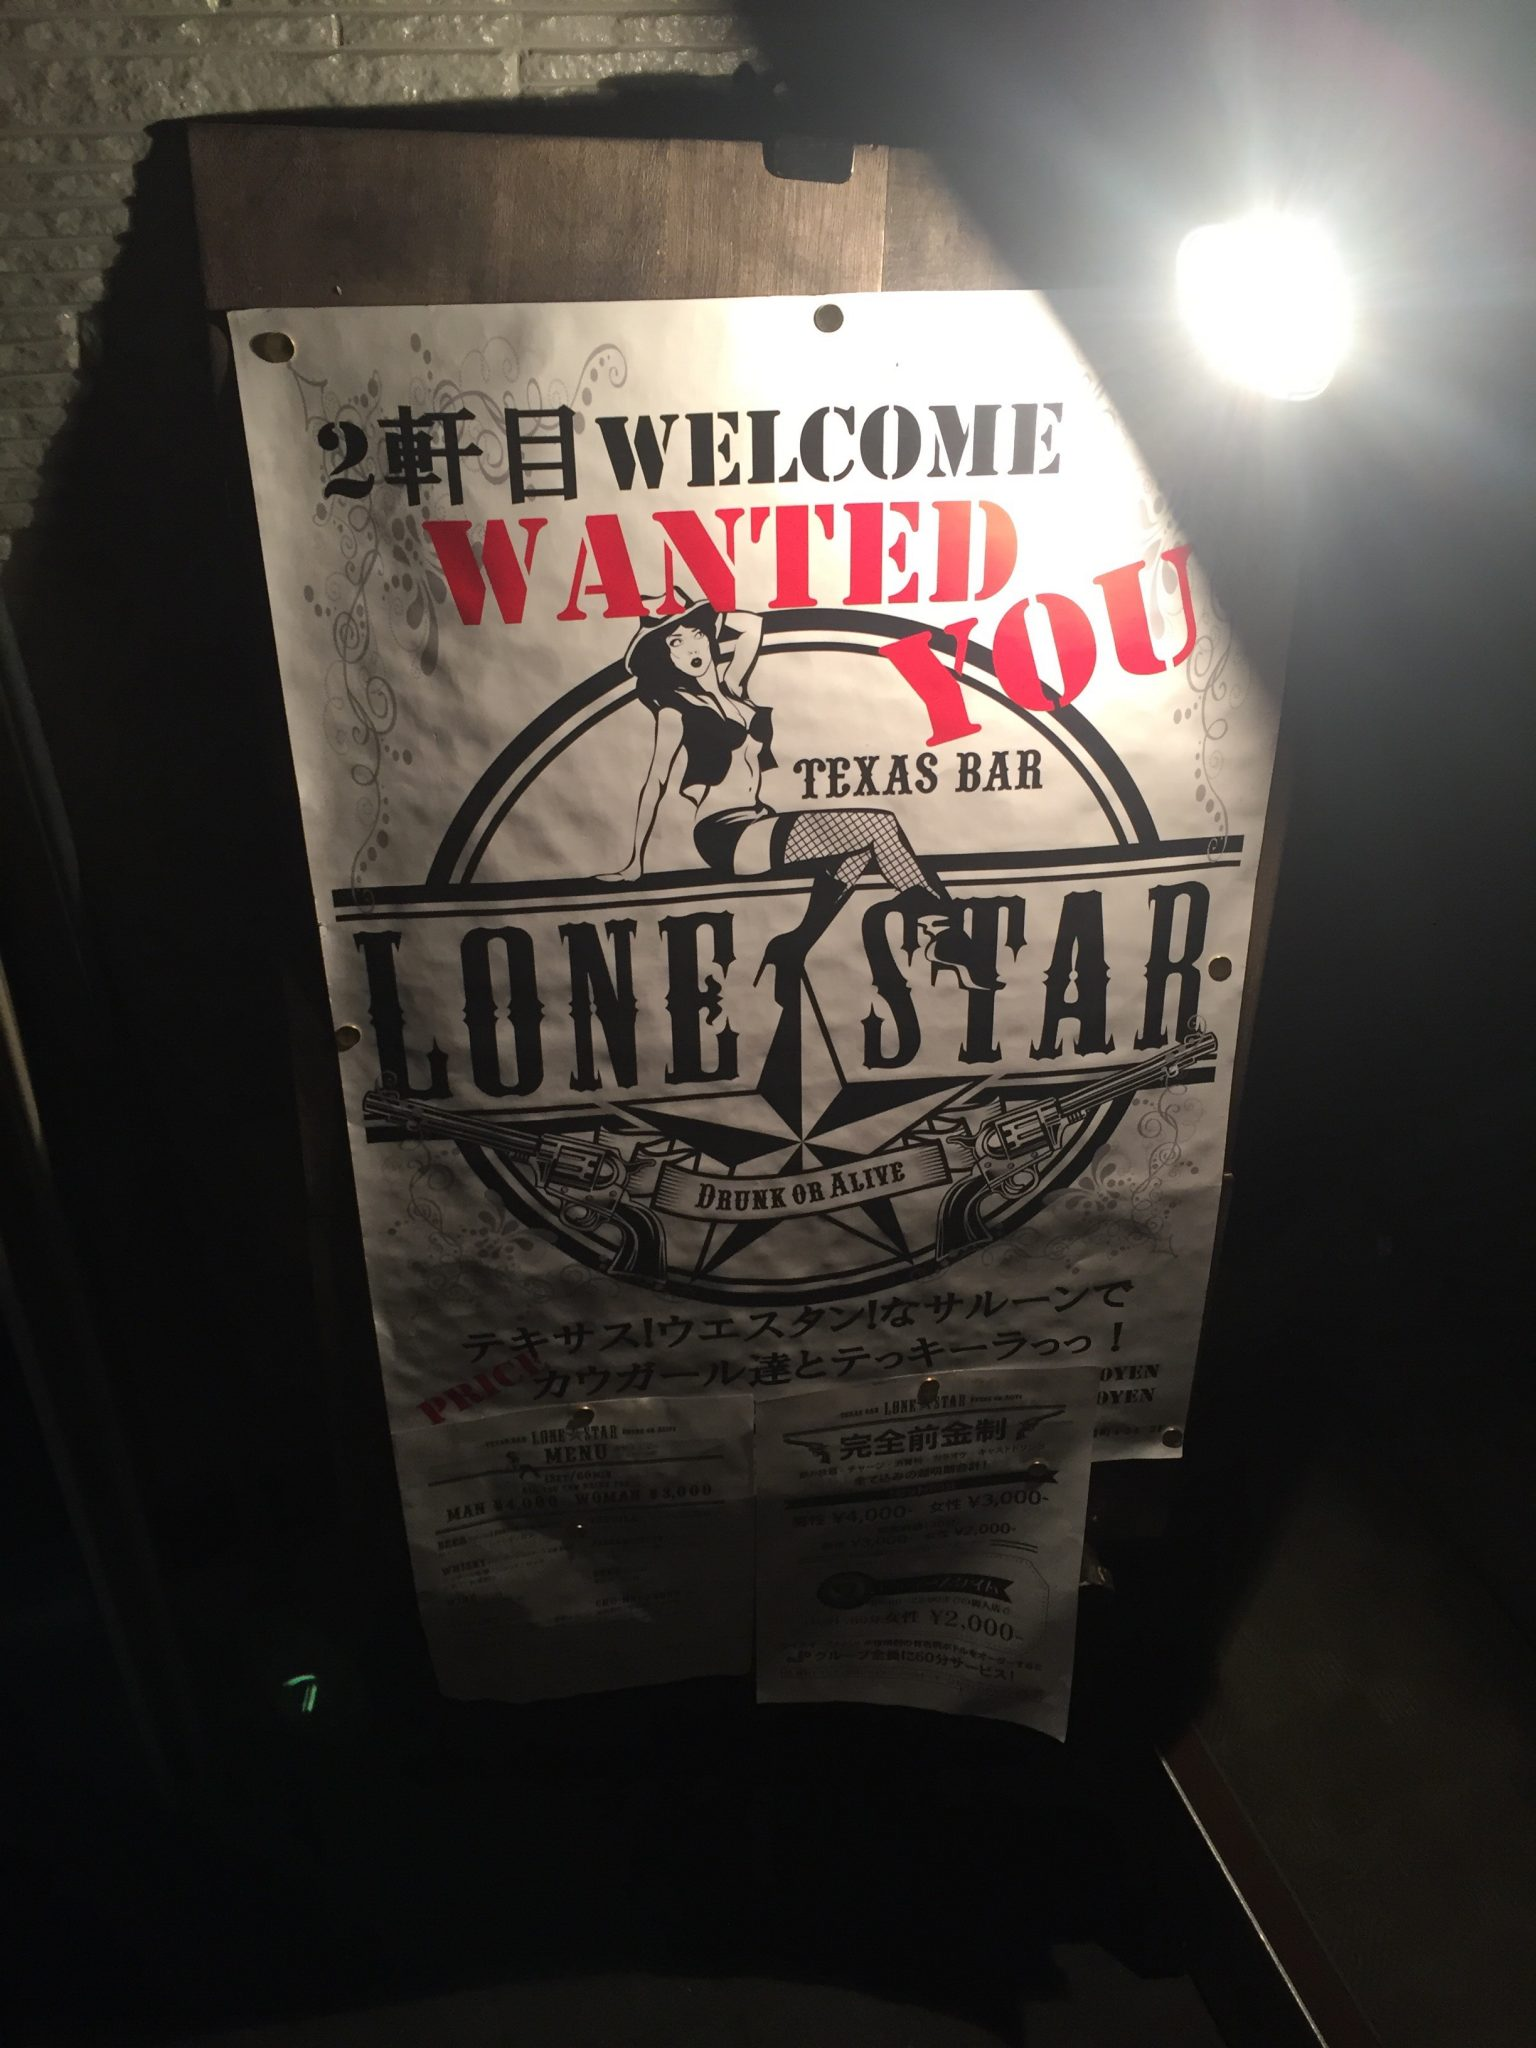 TEXARS BAR★LONE STAR